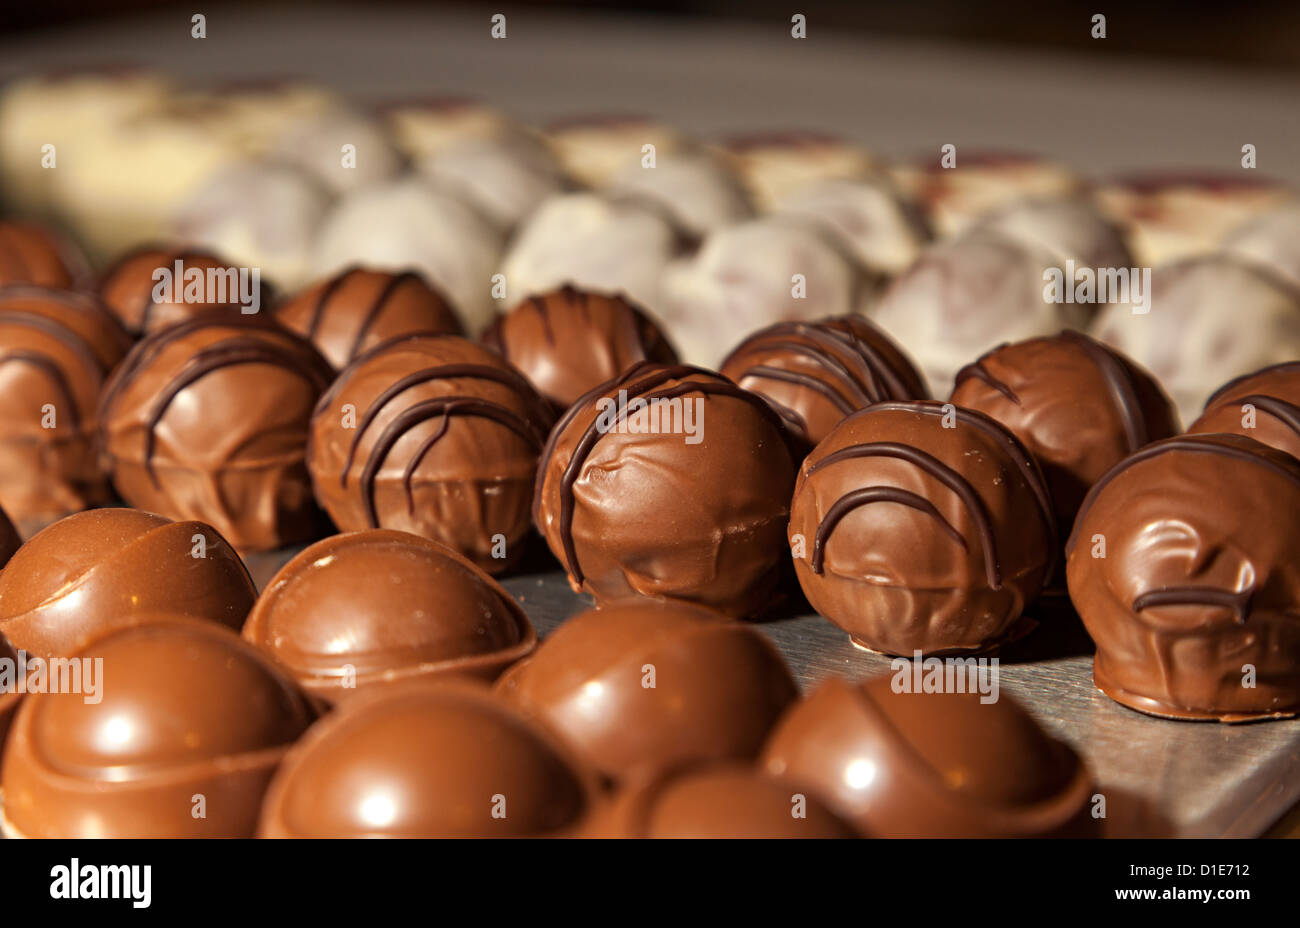 Jersey Black Butter Truffle chocolates on sale at La Mare Distillery where they are made, Jersey, Channel islands, - Stock Image